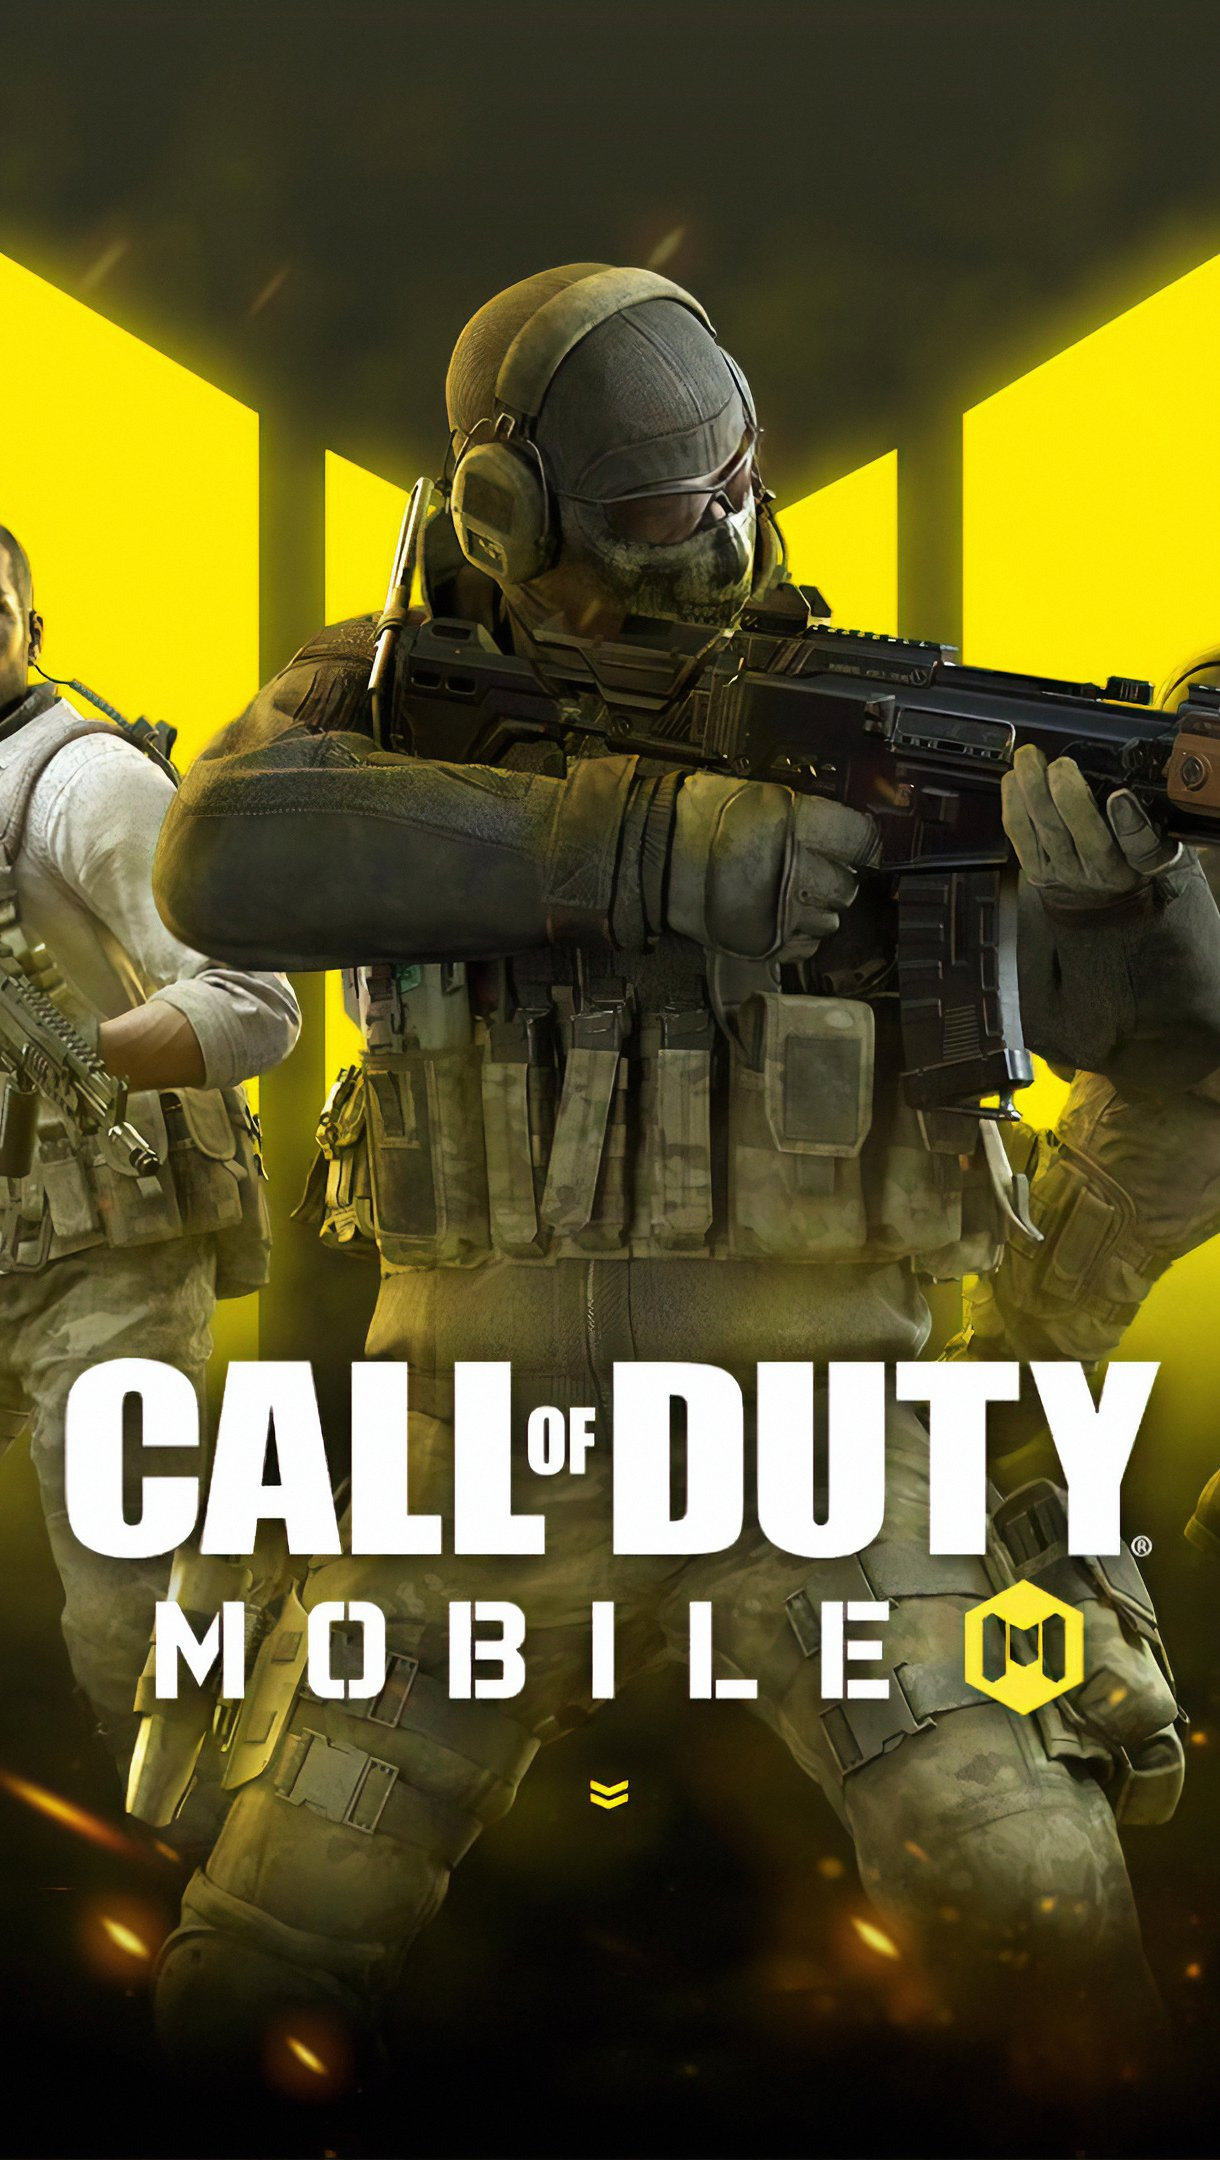 Wallpaper Call of Duty Mobile Poster Vertical